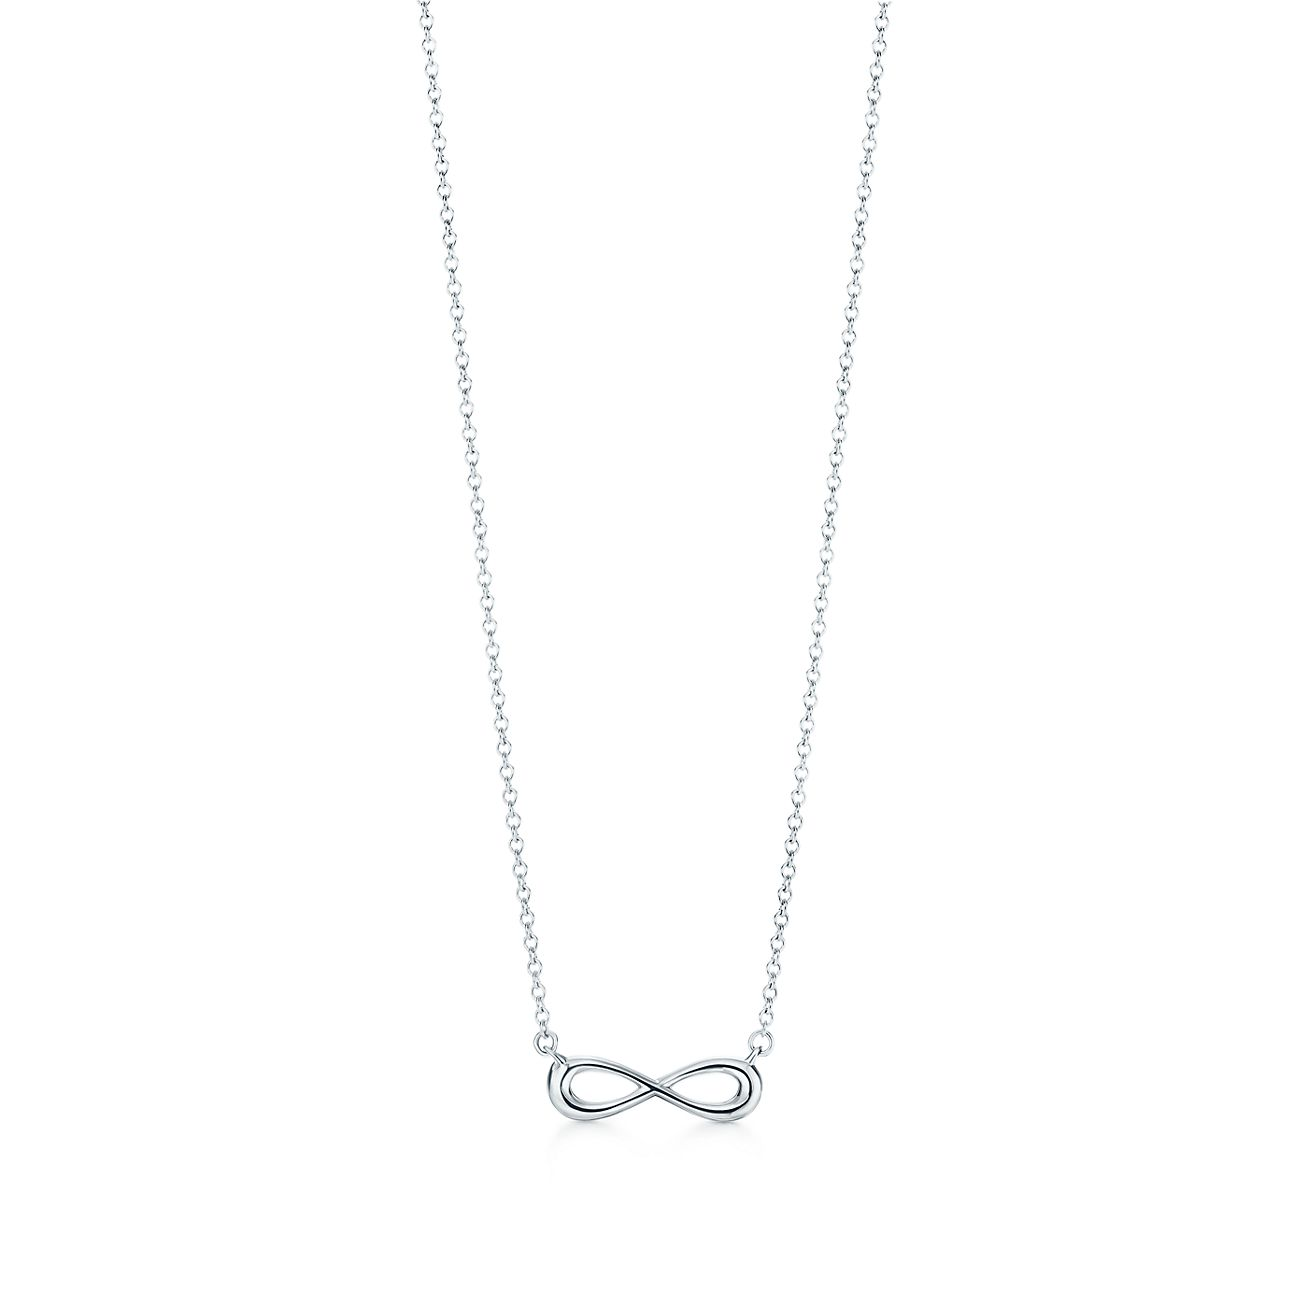 Tiffany Infinity necklace in sterling silver Tiffany & Co.